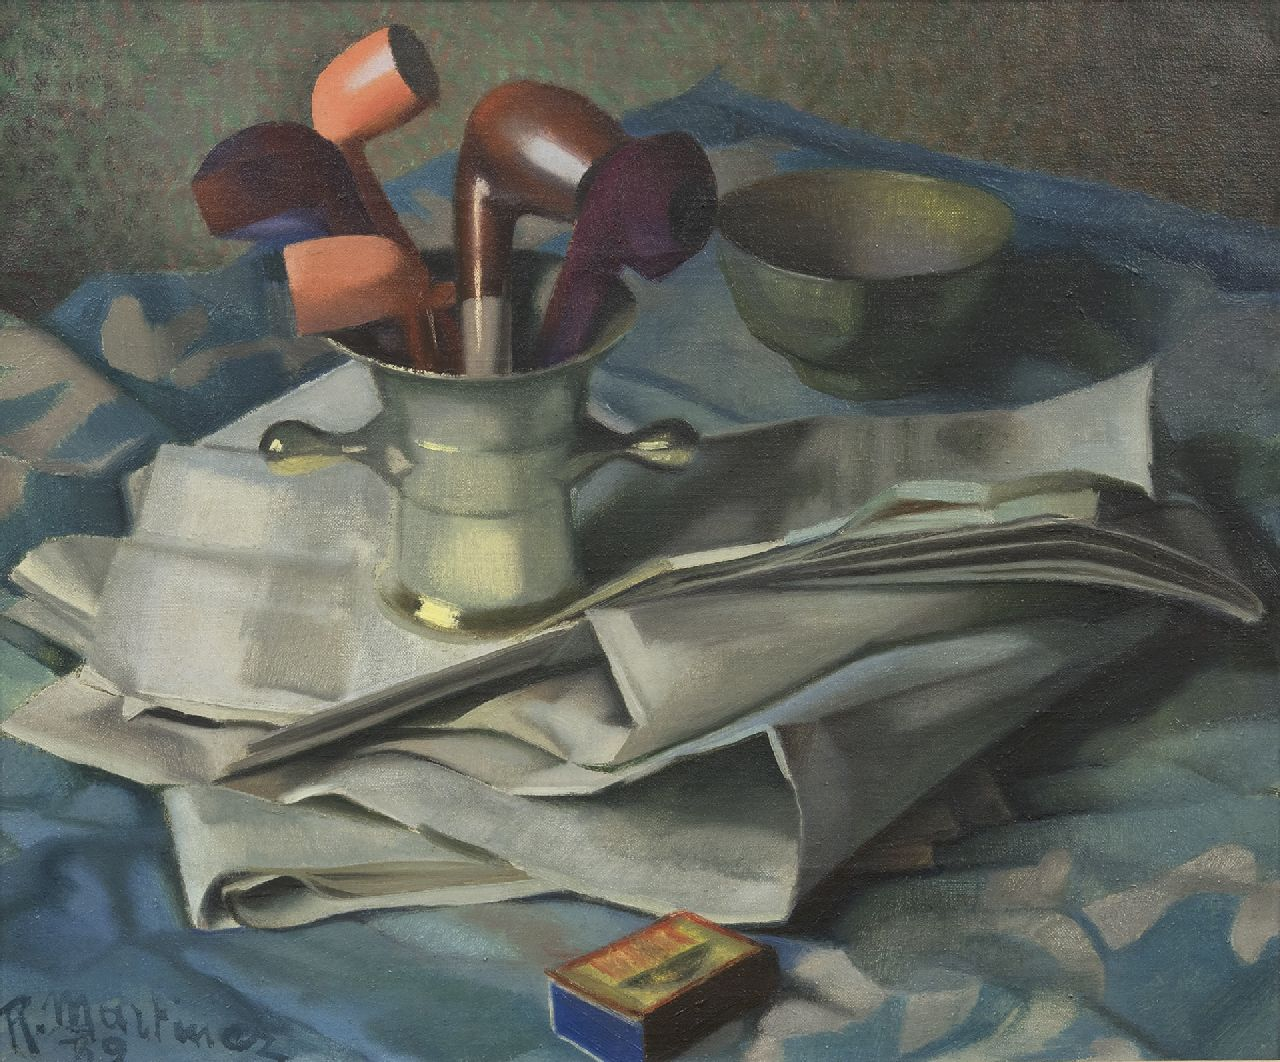 Raoul Martinez | Still life with mortar, pipes and a newspaper, oil on canvas, 46.2 x 55.3 cm, signed l.l. and dated '39